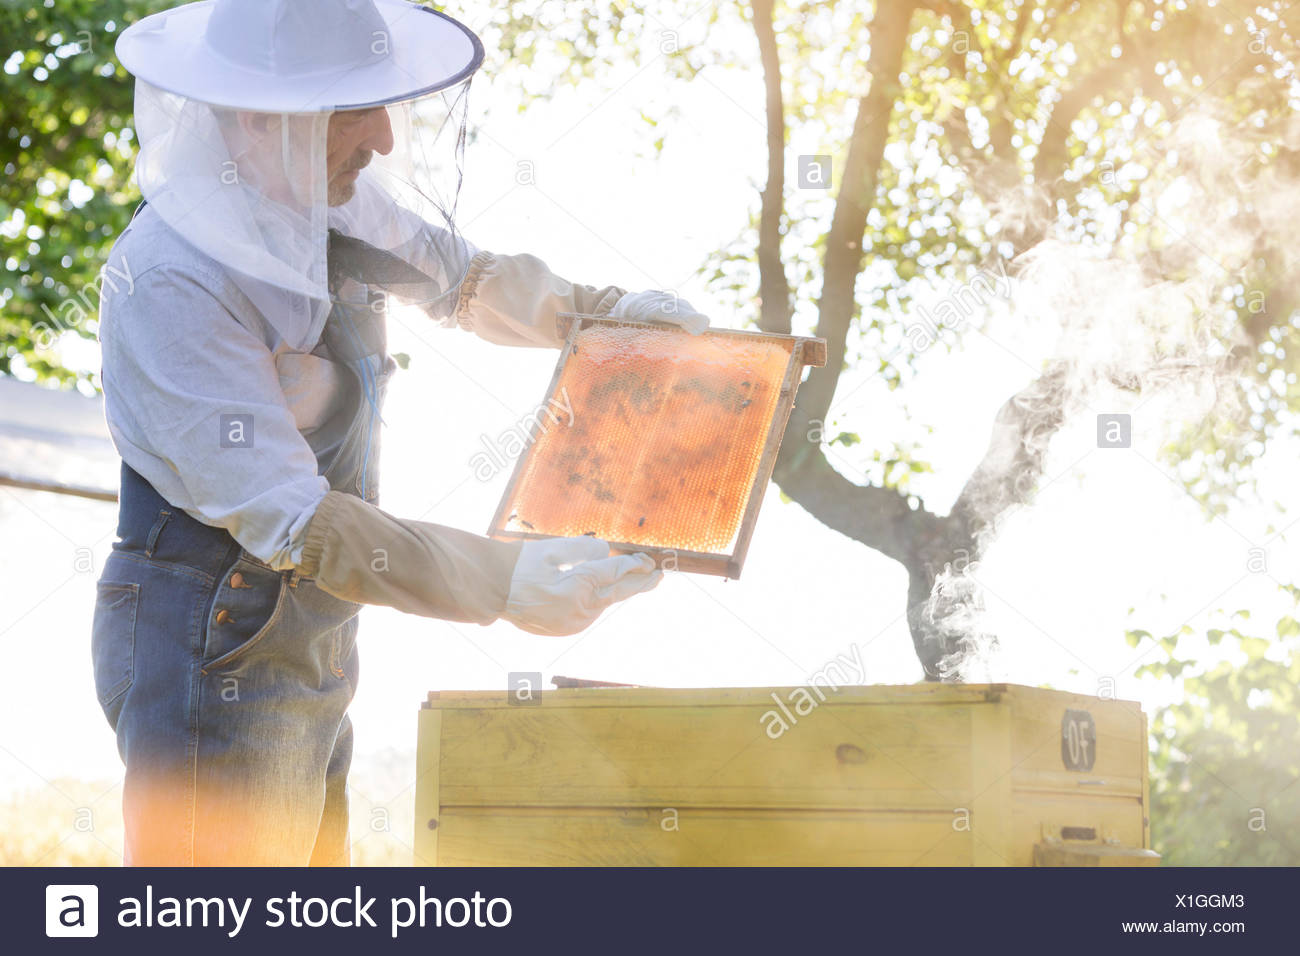 Beekeeper in protective clothing examining bees on honeycomb - Stock Image